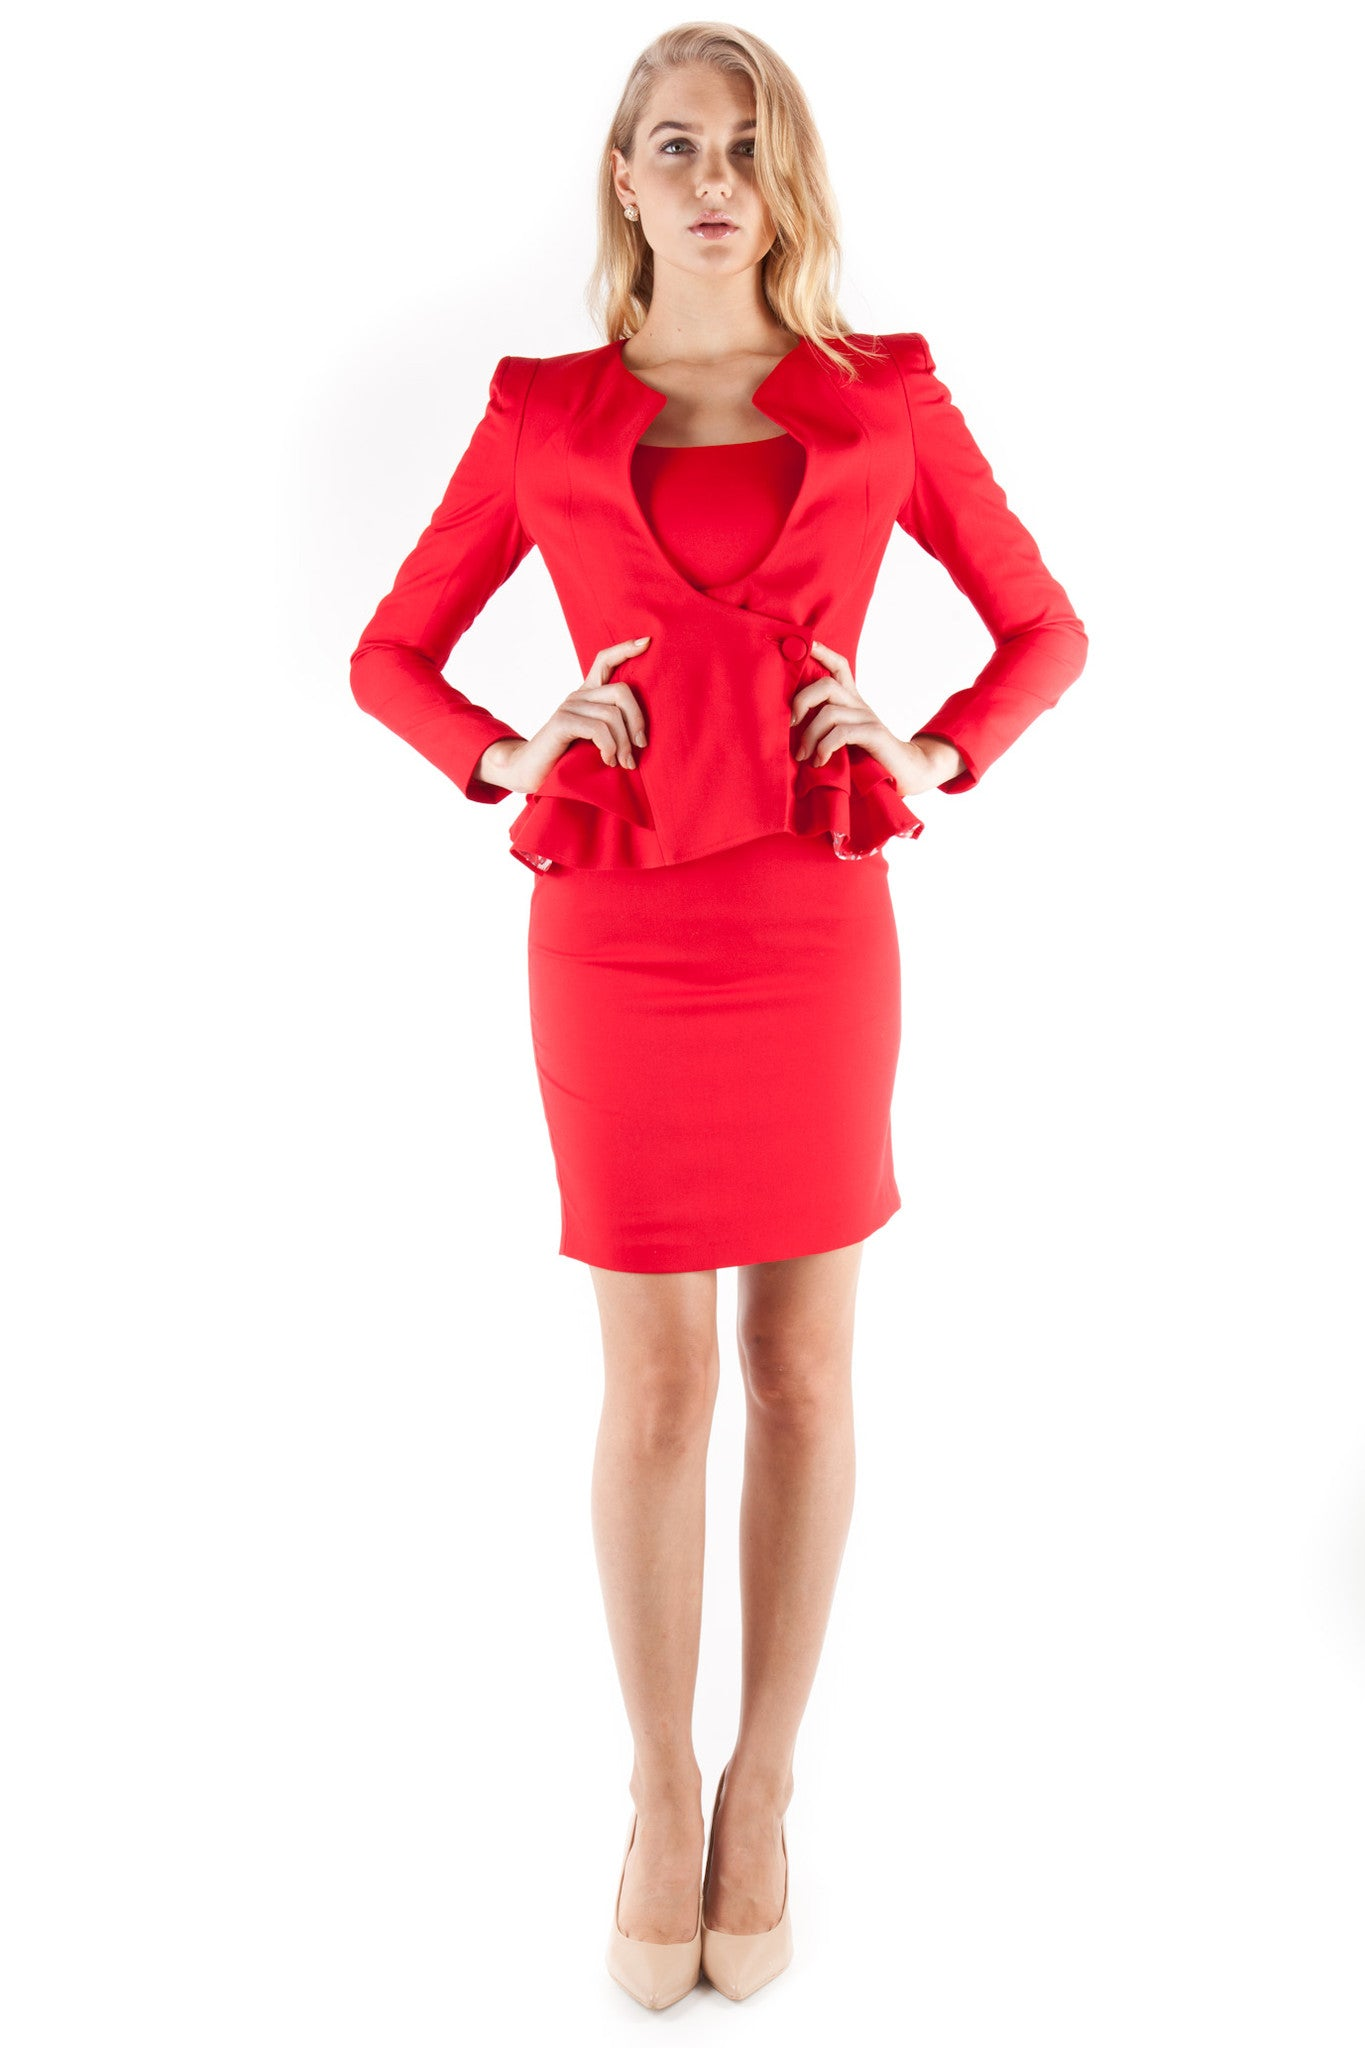 Queen of Hearts Peplum Jacket